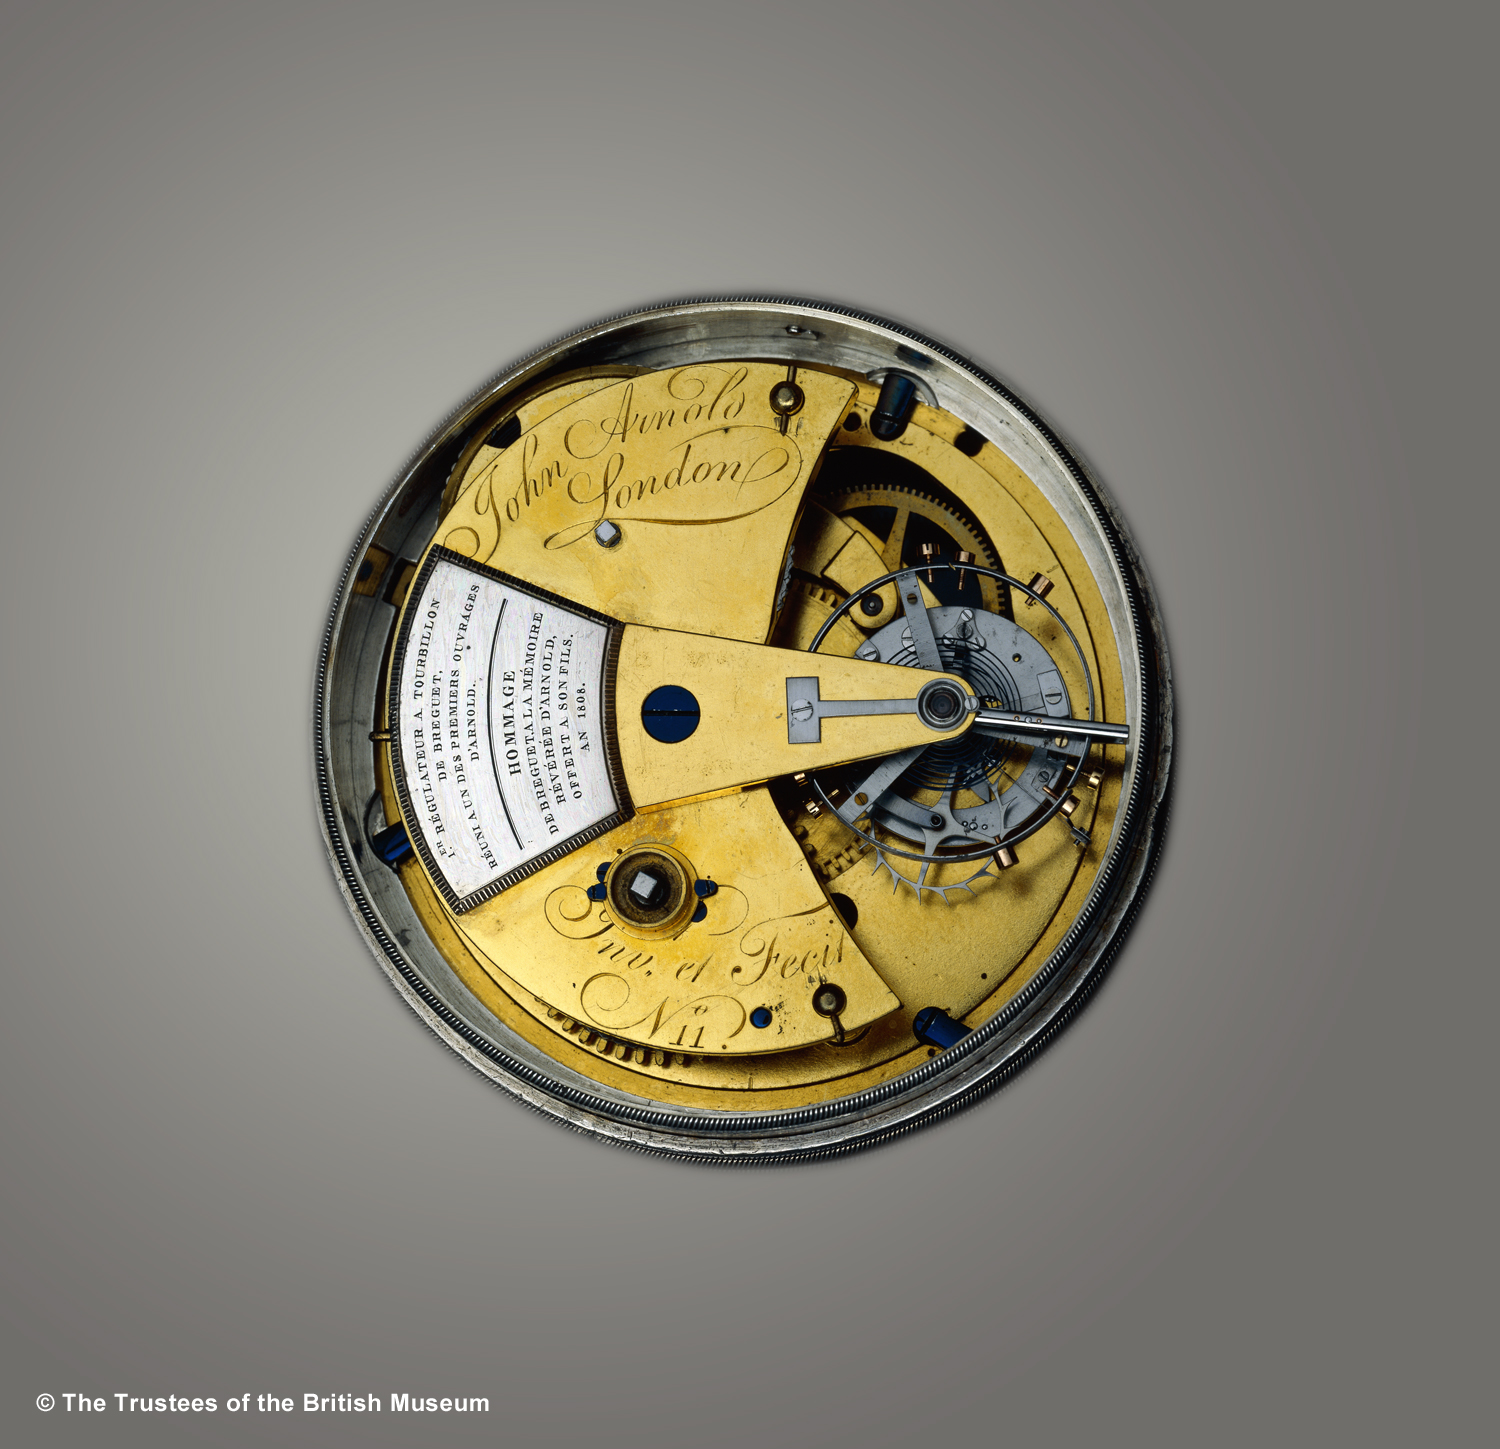 John Arnold and A.L. Breguet Chronometer with Tourbillon (1808)